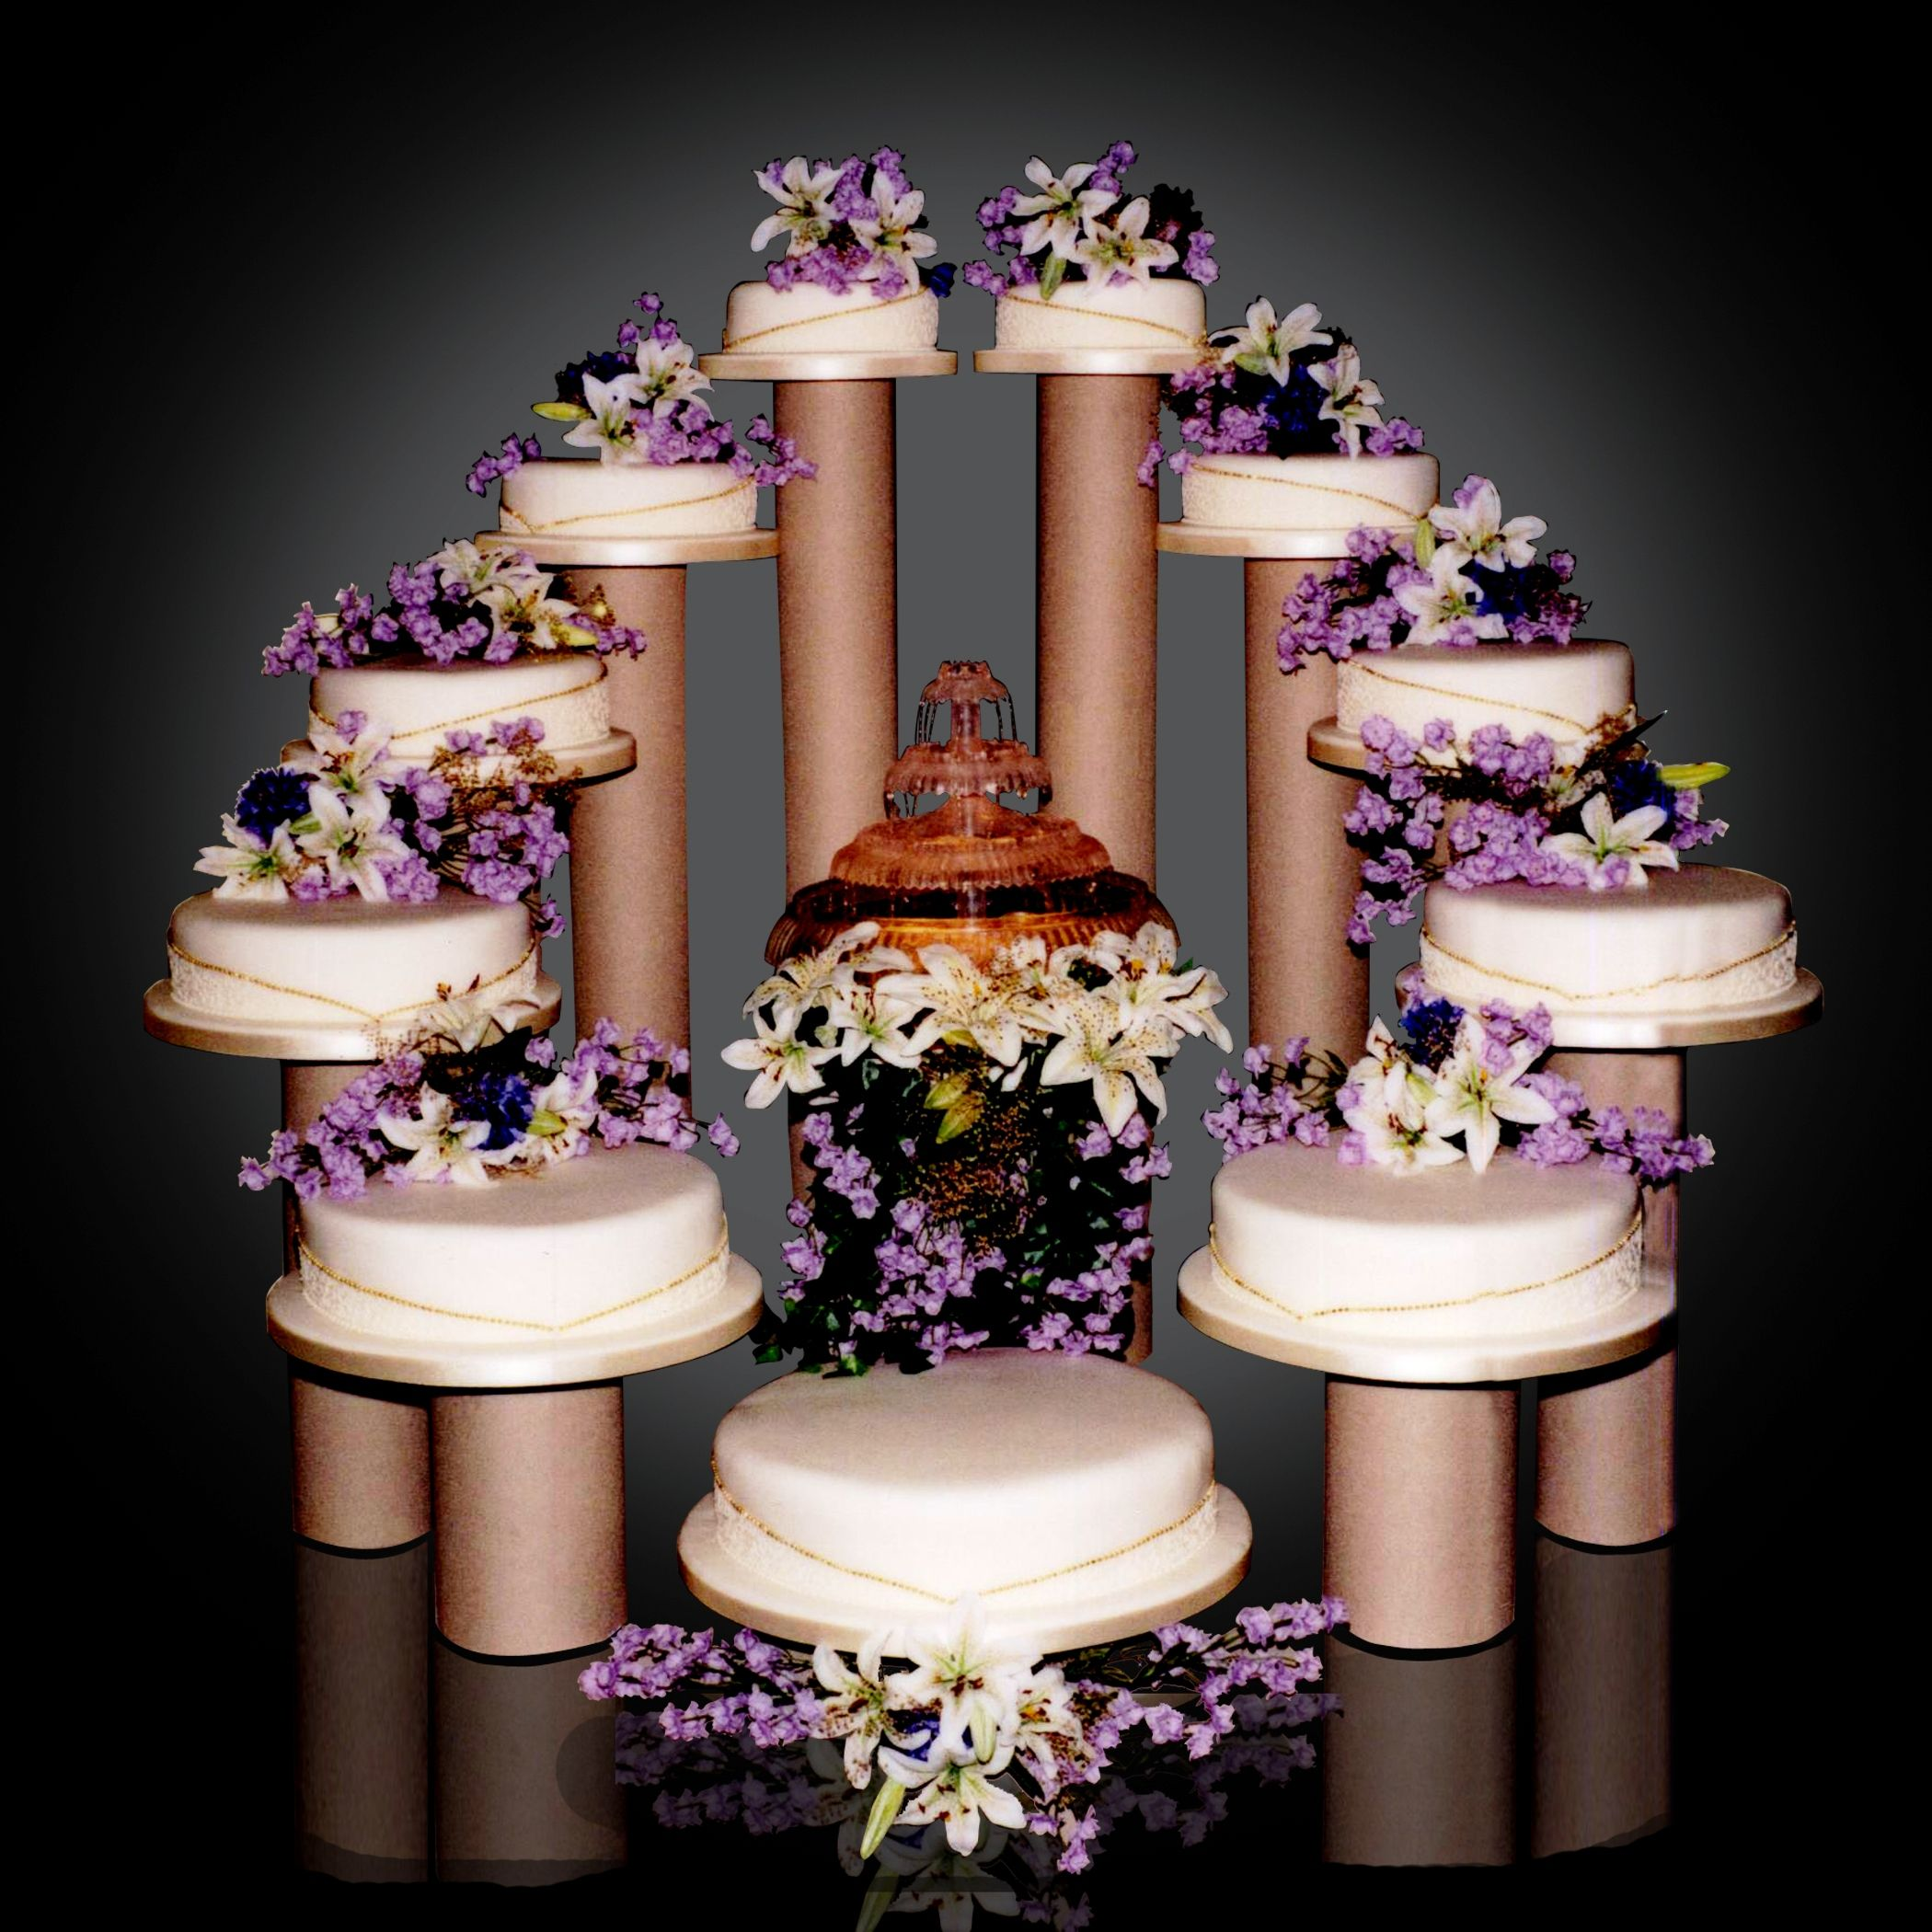 Big Wedding Cakes With Fountains 11 Tier with Fountain